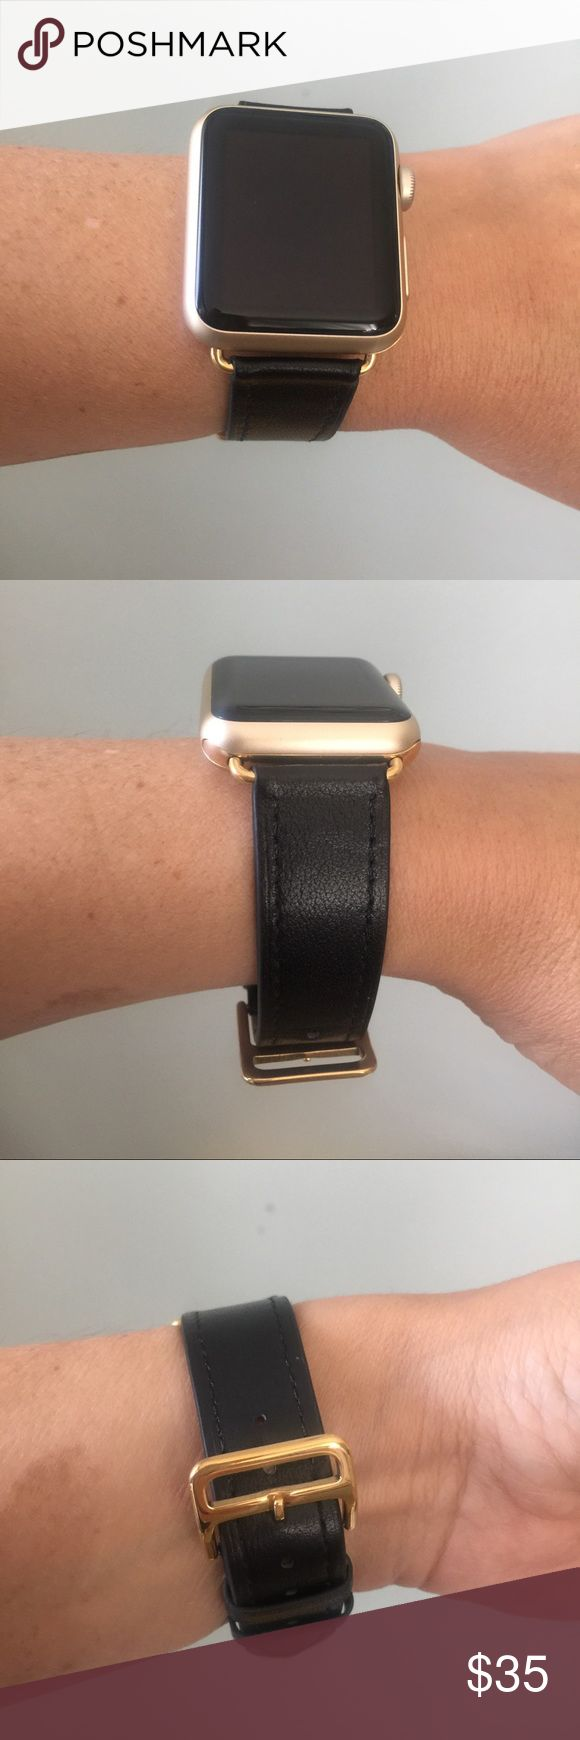 GOLD hardware Apple Watch band, black leather! ❤️ Black Apple Watch band with GOLD hardware.   Single tour band, genuine high quality leather.  It comes in 38mm and 42mm. Please select your size when you purchase. The adapters also fit the Apple Watch Sport.   I also have other band colors, hardware colors and styles in my closet. Check them out!   I offer 15% off if you buy two or more! only the band is for sale; it does not include the watch. Other